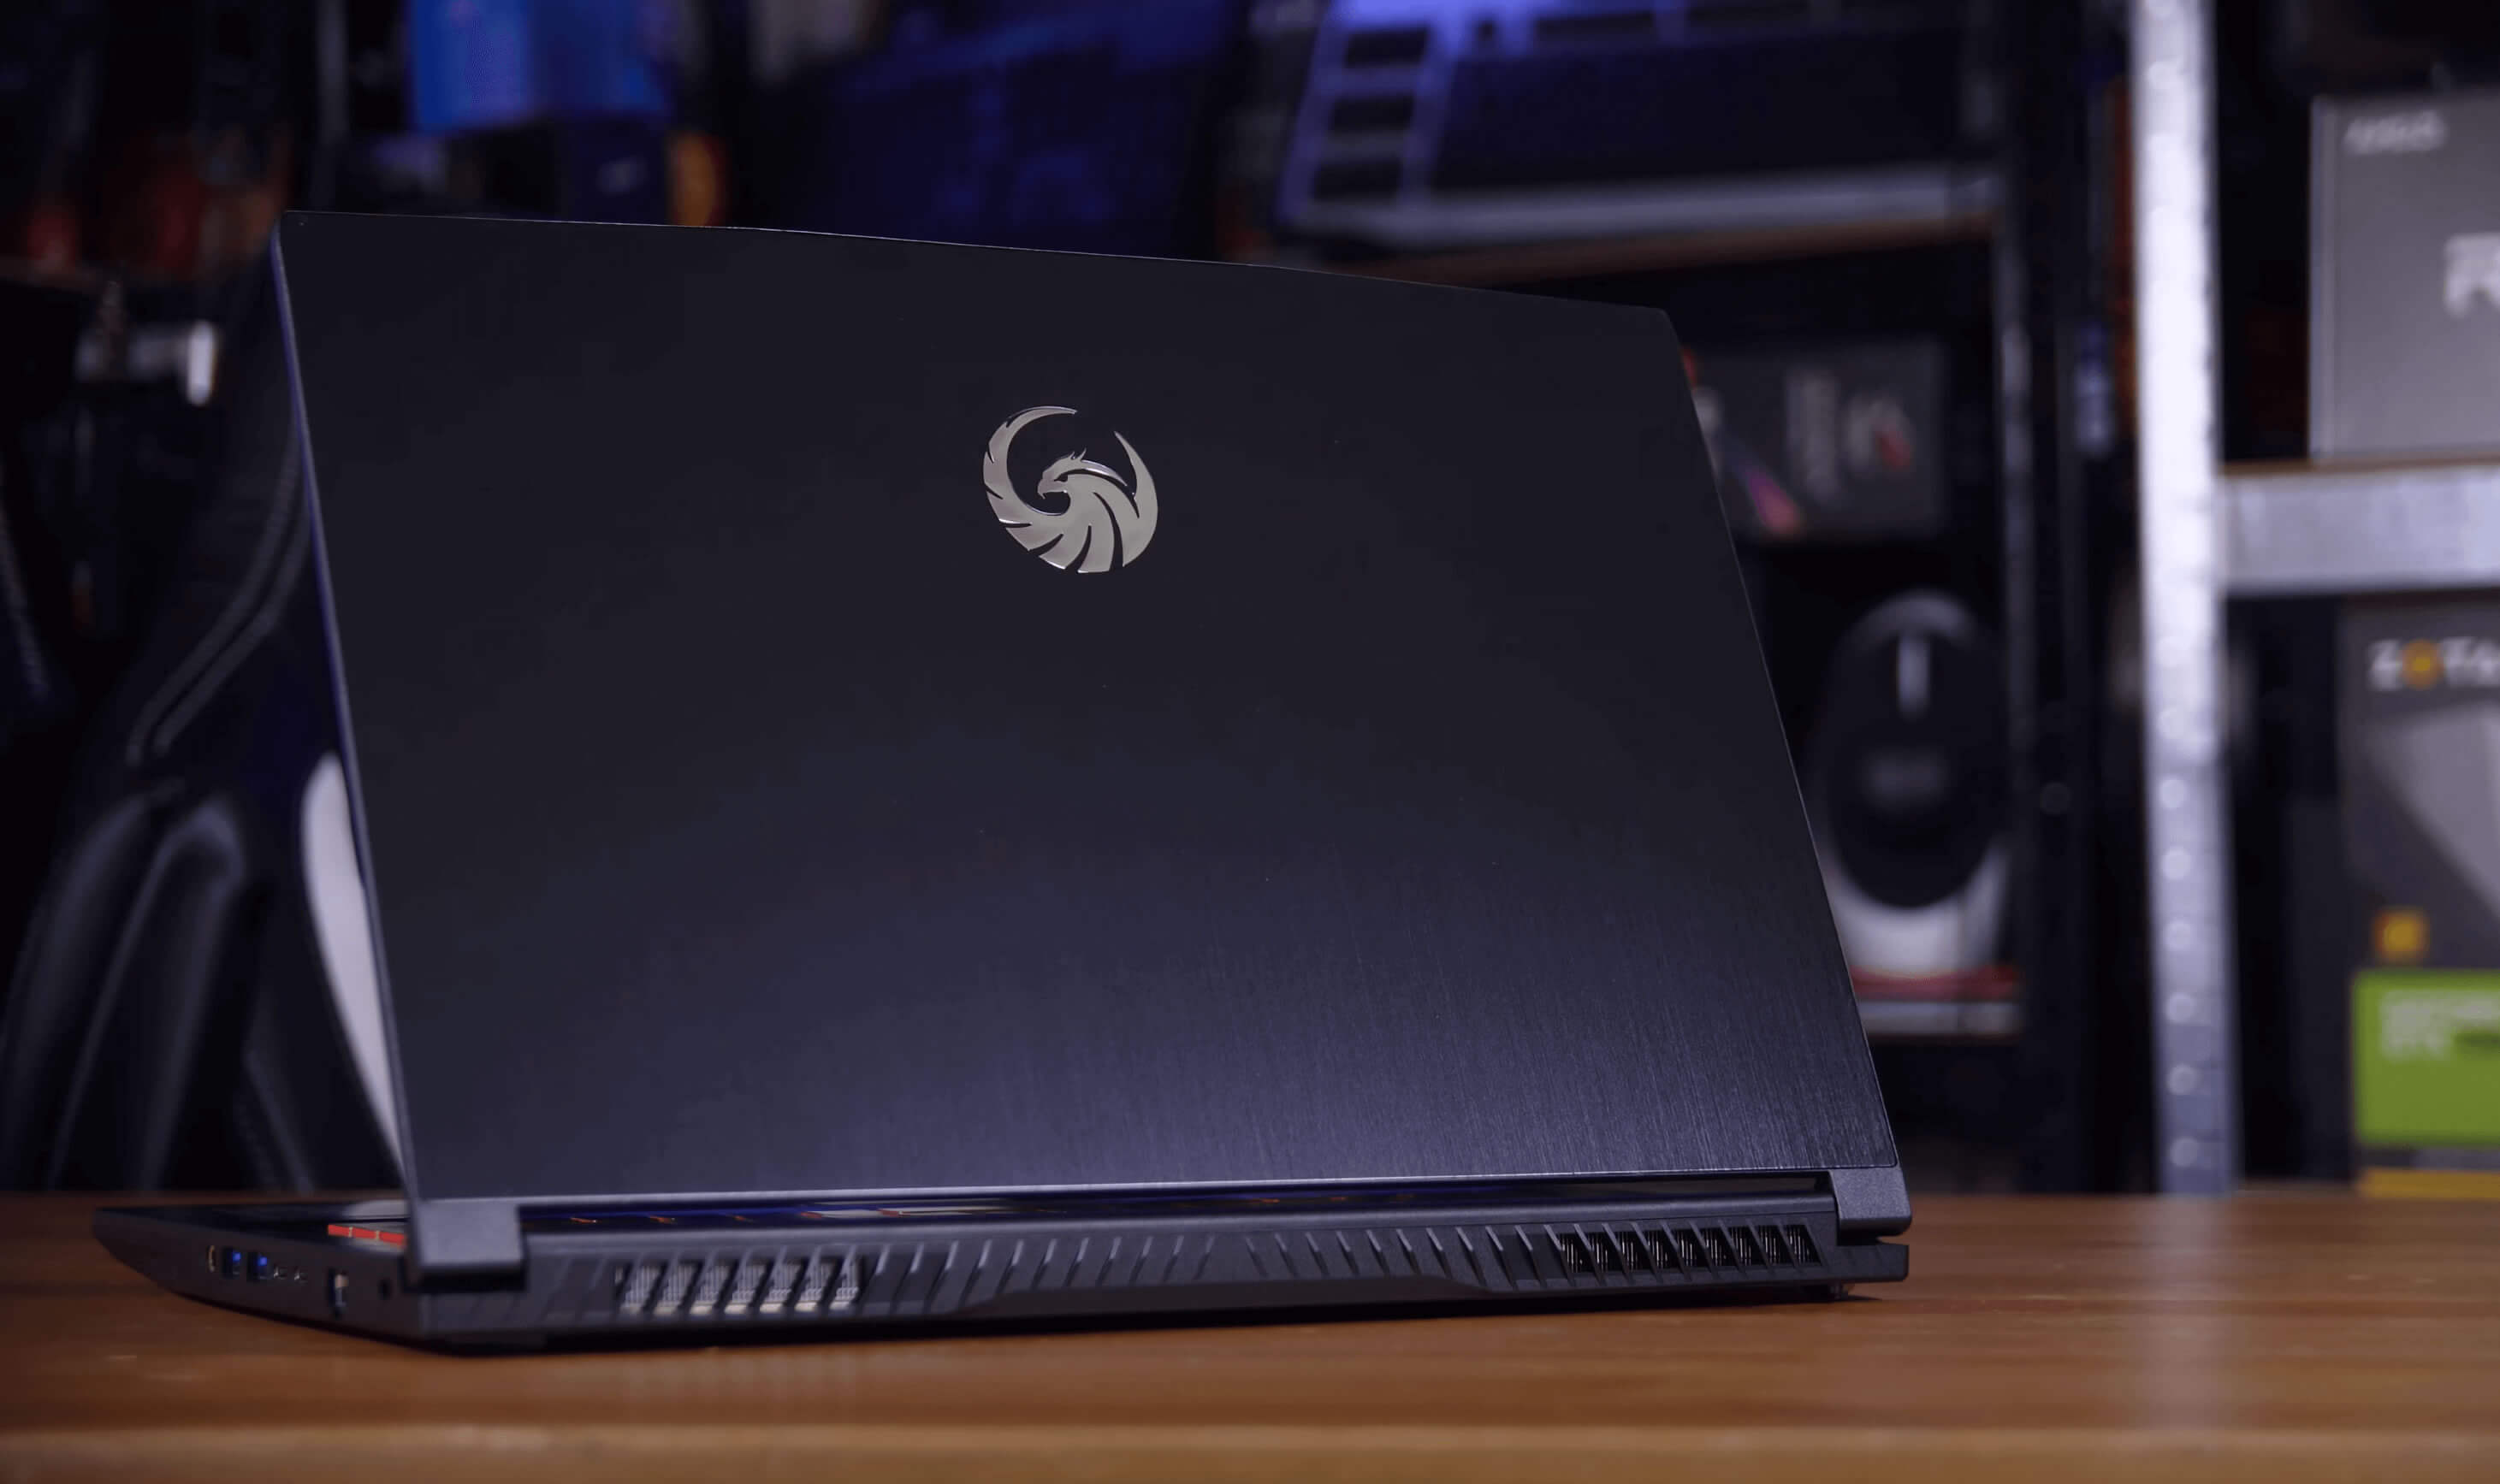 MSI allegedly attempts to bribe YouTuber to prevent a negative review 1